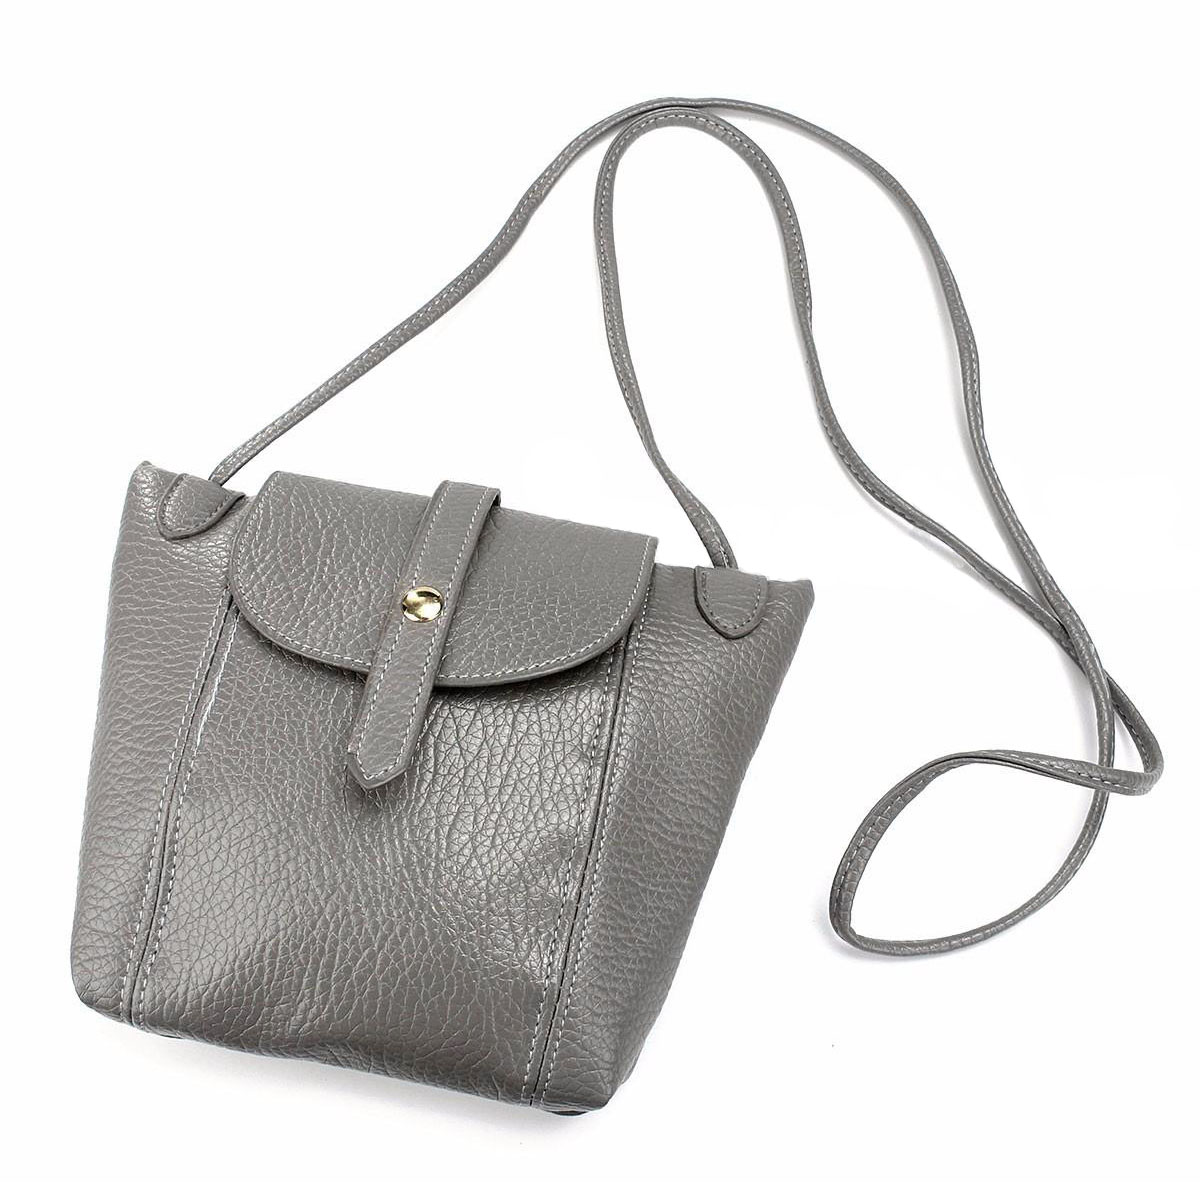 Ladies Leather Handbag Shoulder Bag Crossbody Women Messenger Satchel Purse Tote Colors:Gray